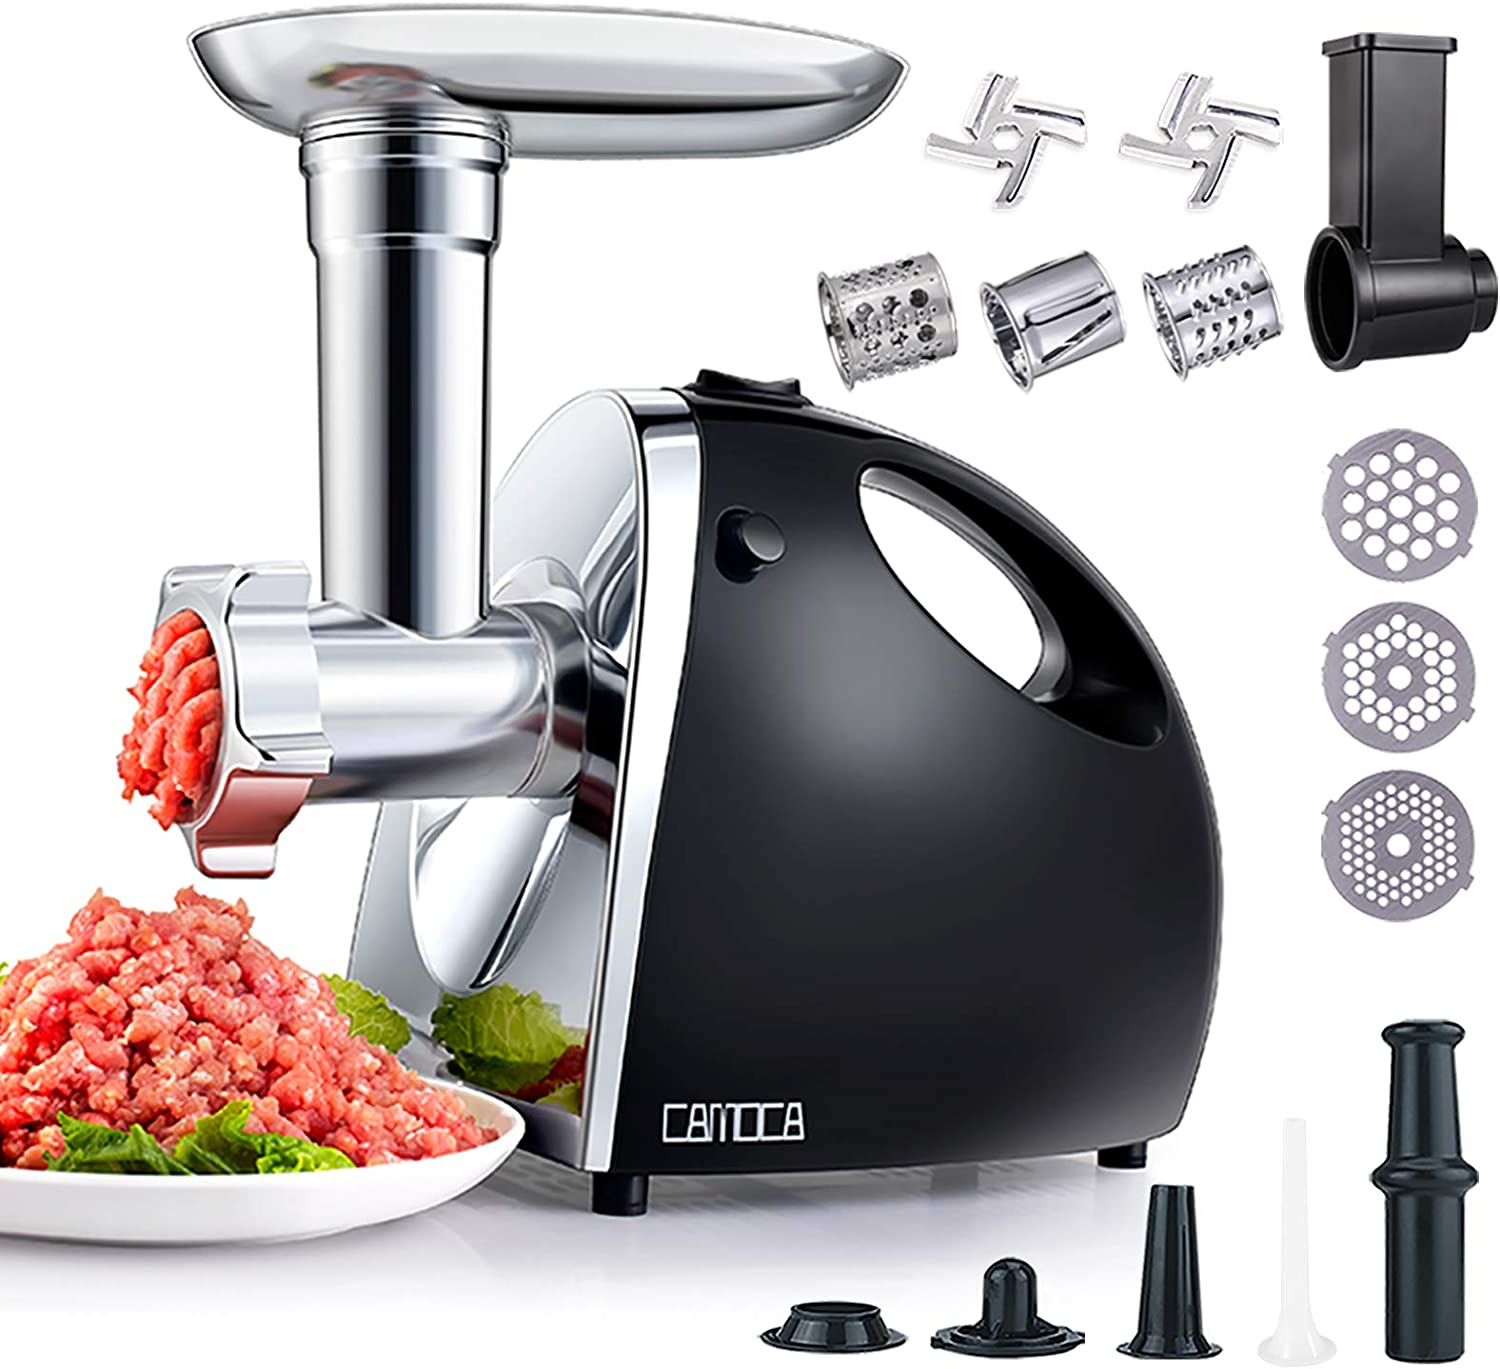 CAMOCA Meat Grinders for Home Use, Electric Food Grinder & Sausage Maker with Handle, [1600W Max], with Stainless Steel Slicer Shredder Attachment, 2 Blade and 3 Grinding Plates, Sausage & Kubbe kit.